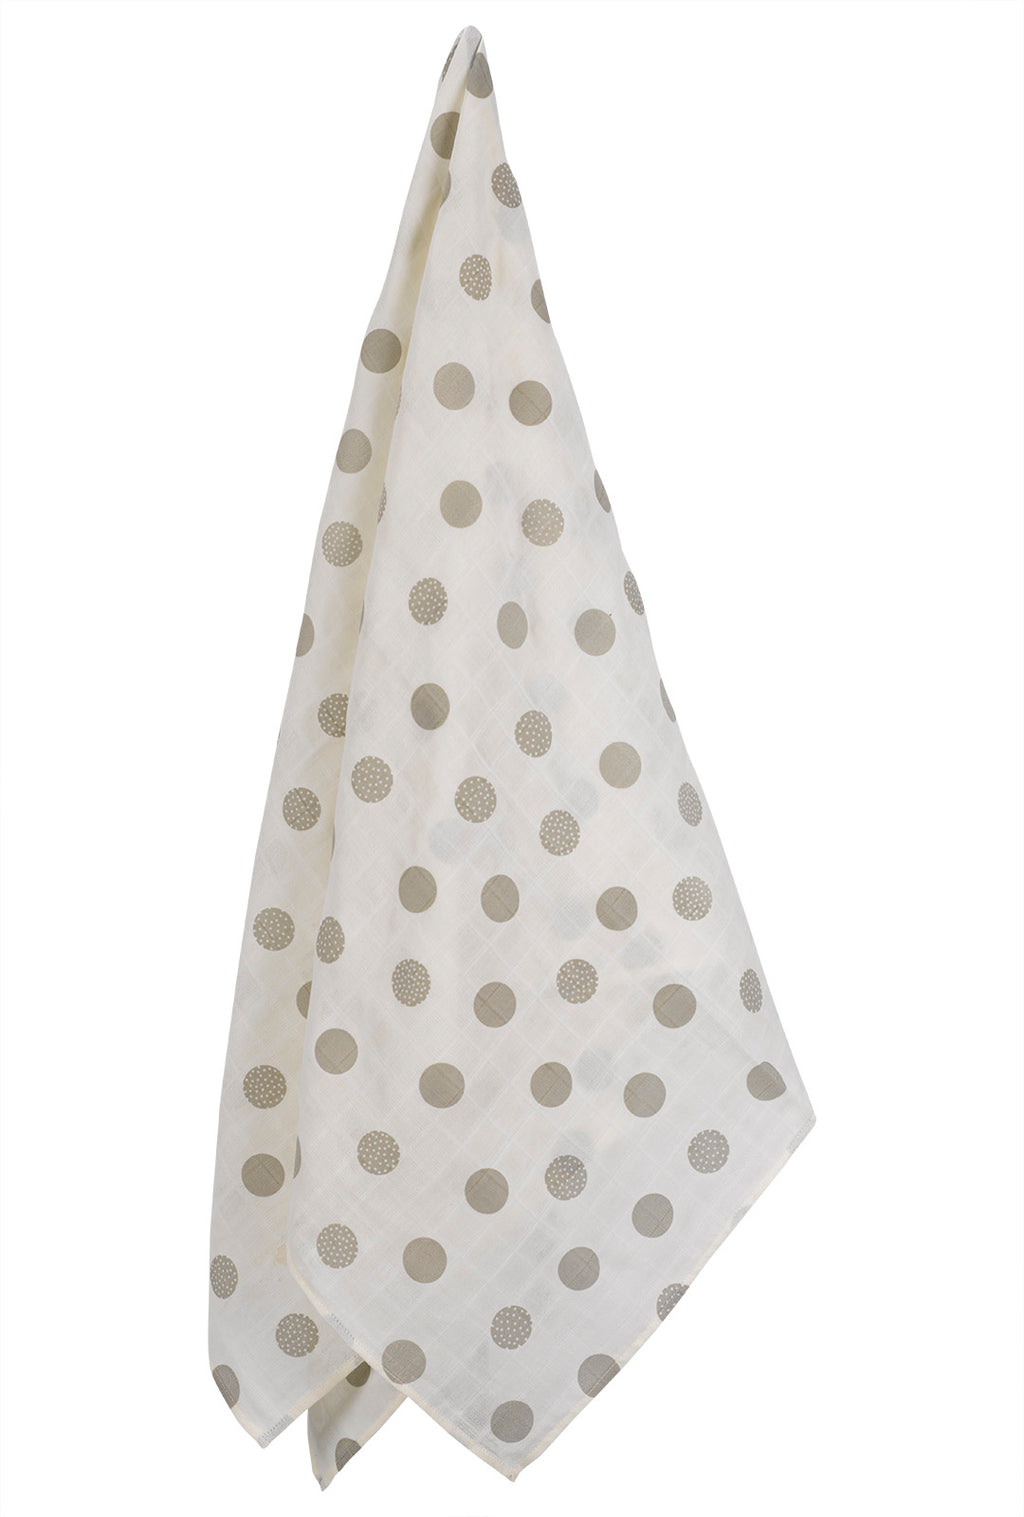 Oversized Polka Dots Muslin Swaddle